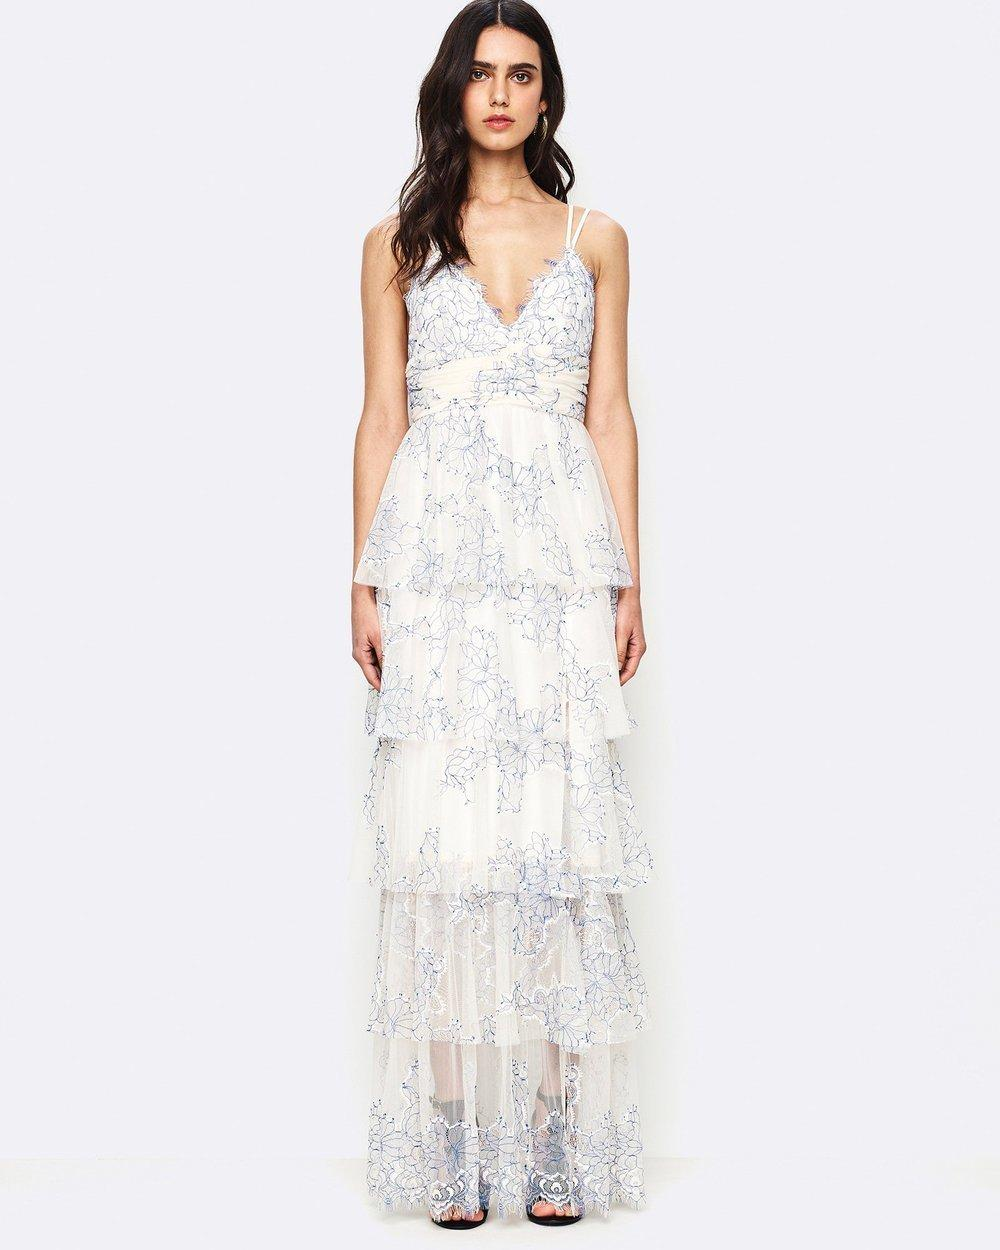 Alice McCall Love is Love Gown | The Volte